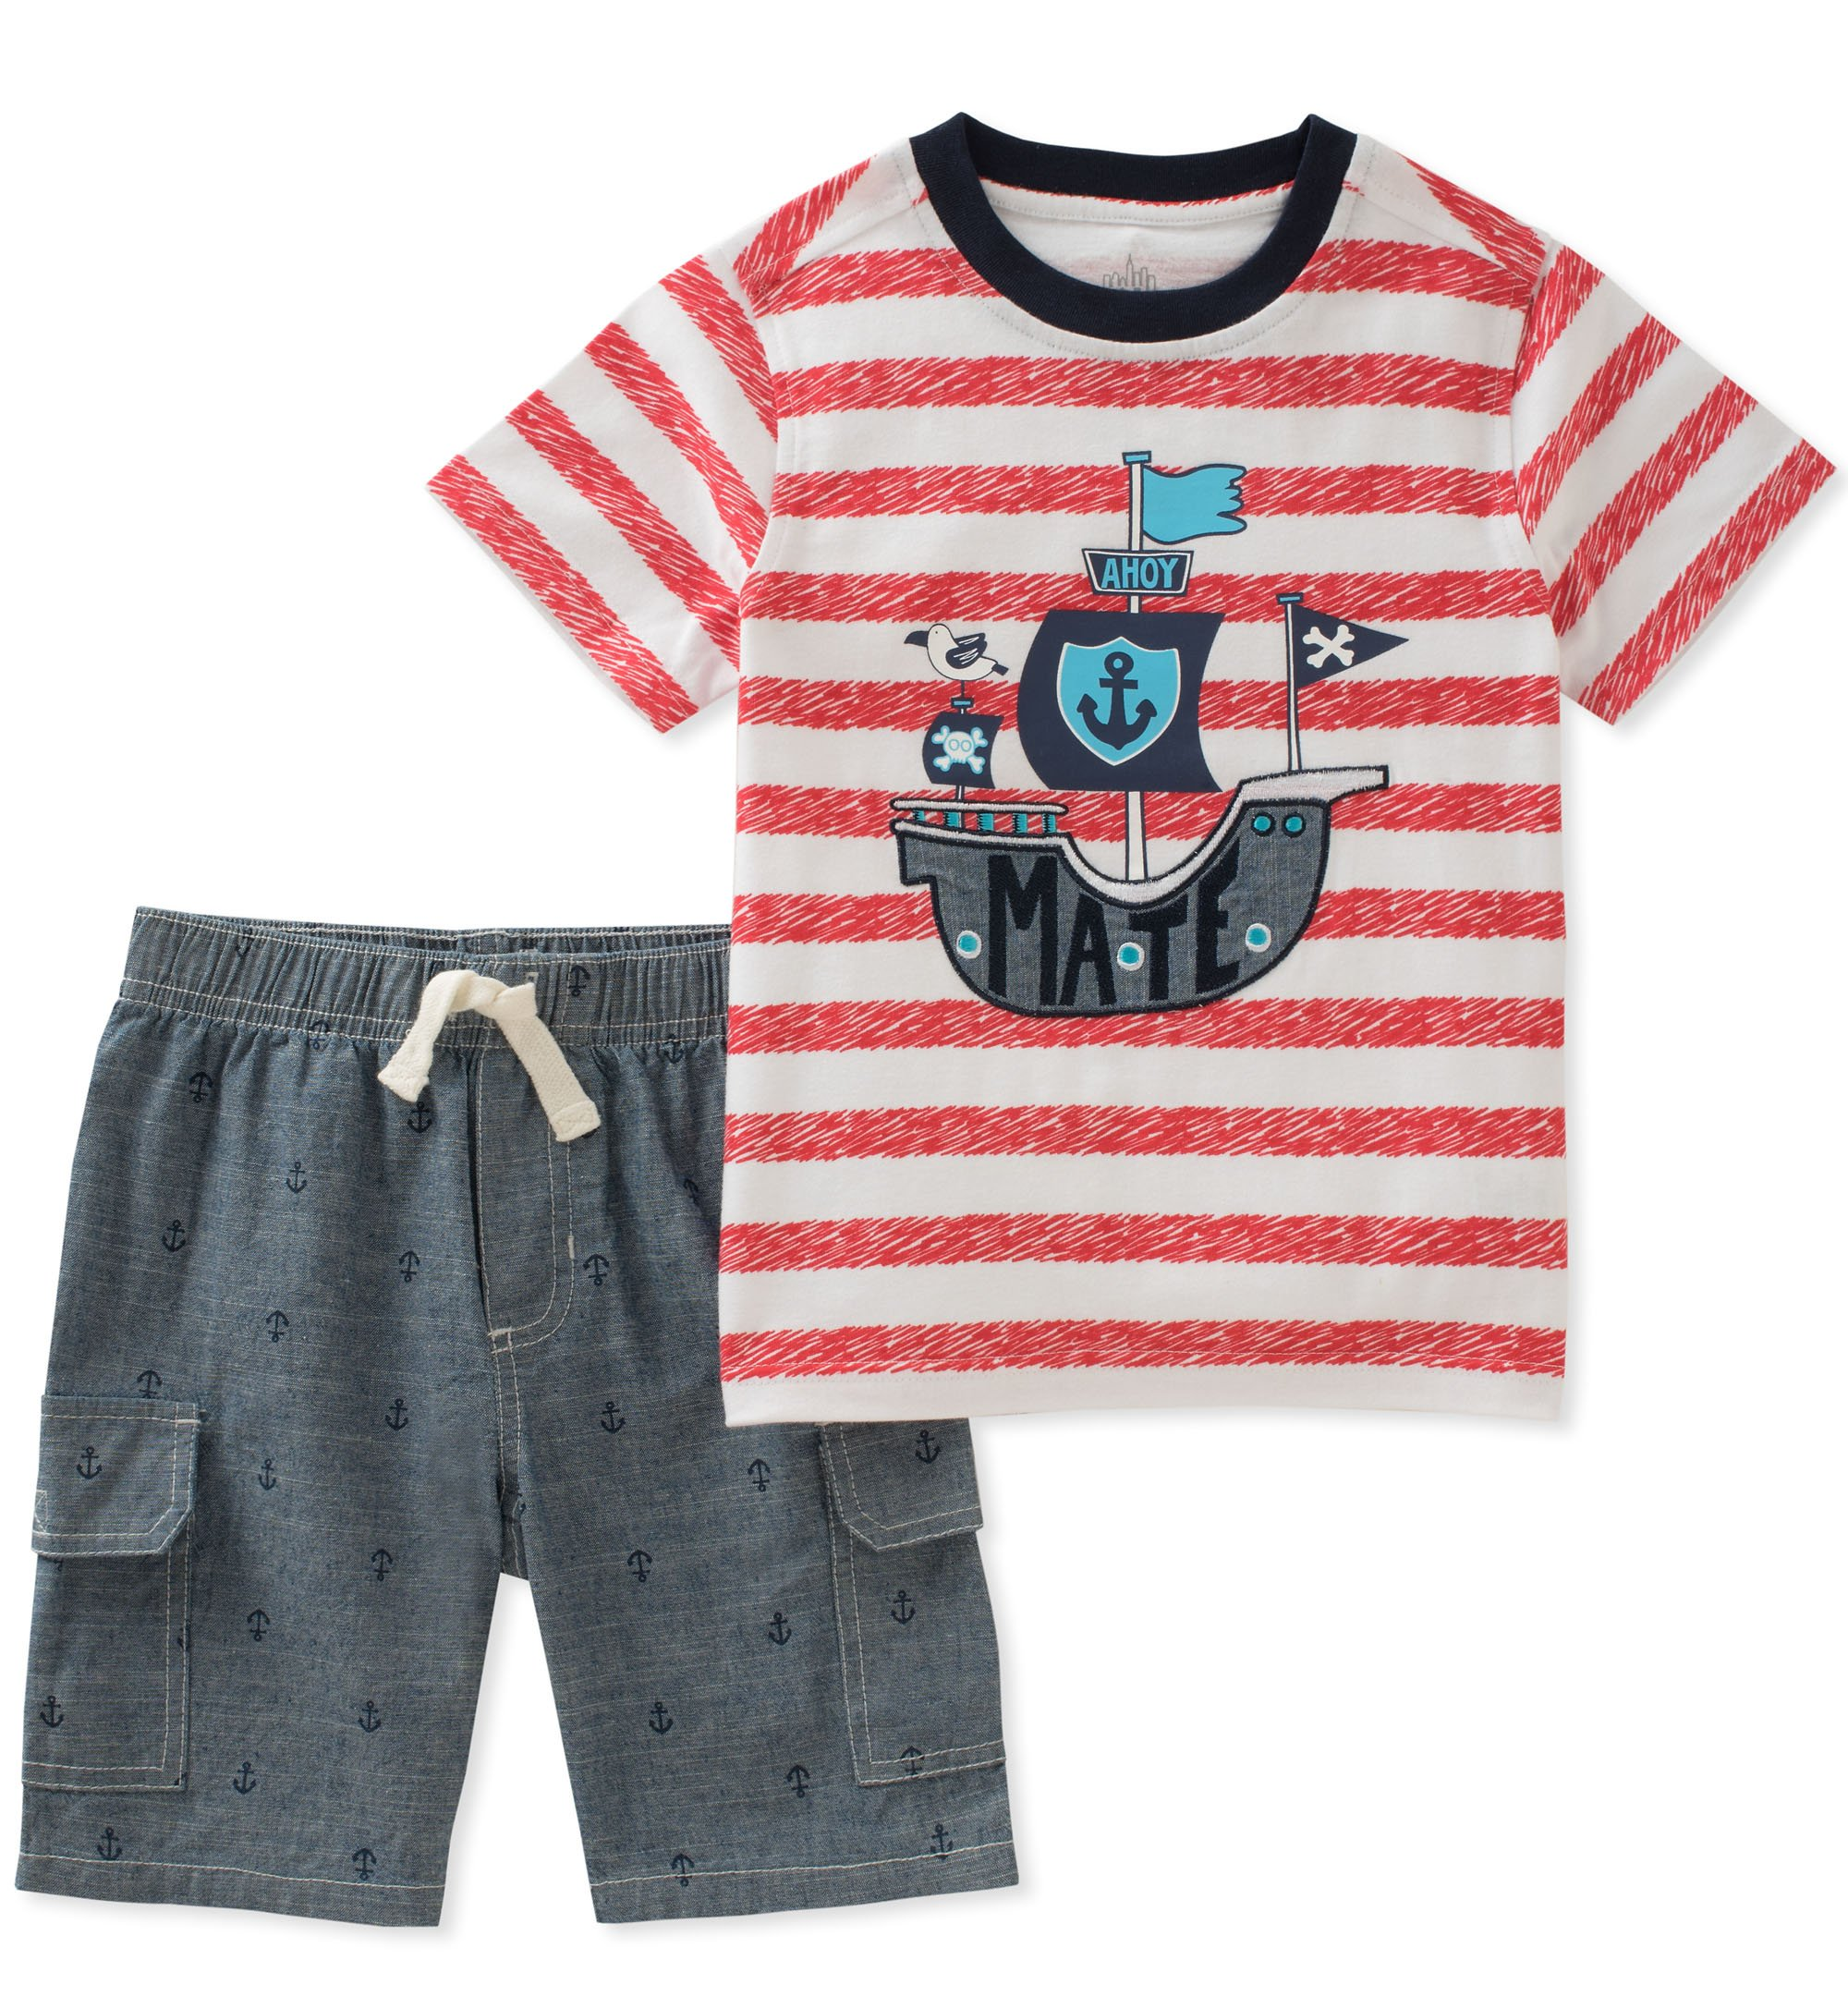 Kids Headquarters Toddler Boys' 2 Pieces Short Set, Red/White/Blue, 4T